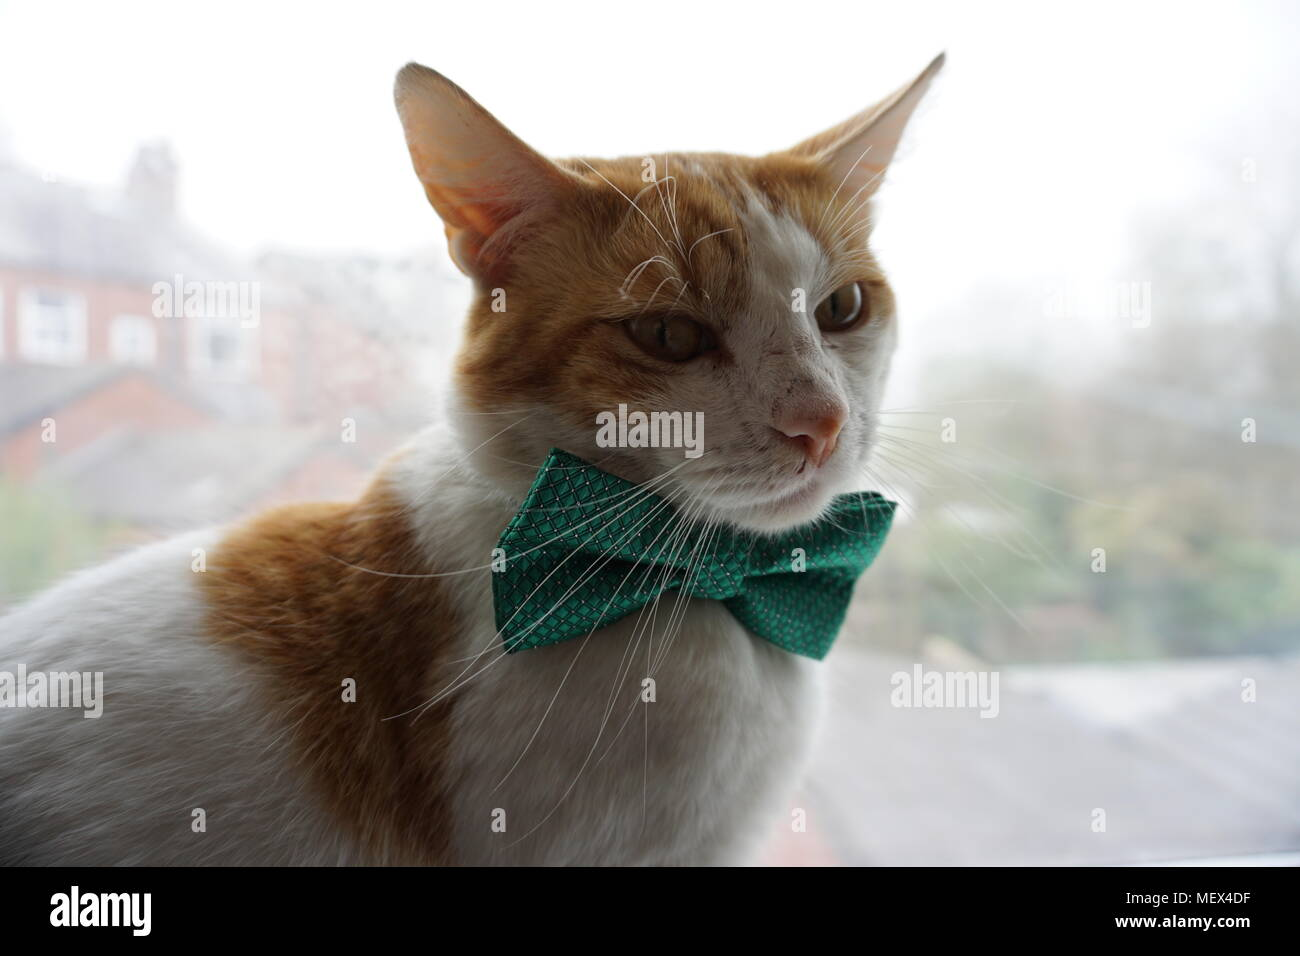 White & Ginger Sat On The Window Sill Wearing A Green Bow tie - Stock Image